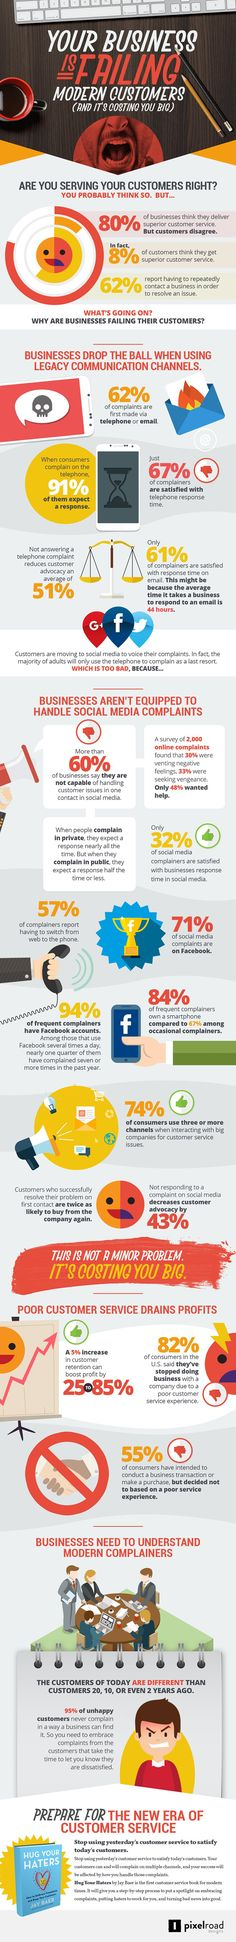 23 Statistics That Show Why Customer Service Mostly Sucks Infographic is one of the best Infographics created in the Business category. Check out 23 Statistics That Show Why Customer Service Mostly Sucks now! Customer Service Jobs, Customer Service Representative, Customer Experience, Opening A Business, Small Business Marketing, Starting A Business, Business Tips, Content Marketing Strategy, Social Media Marketing